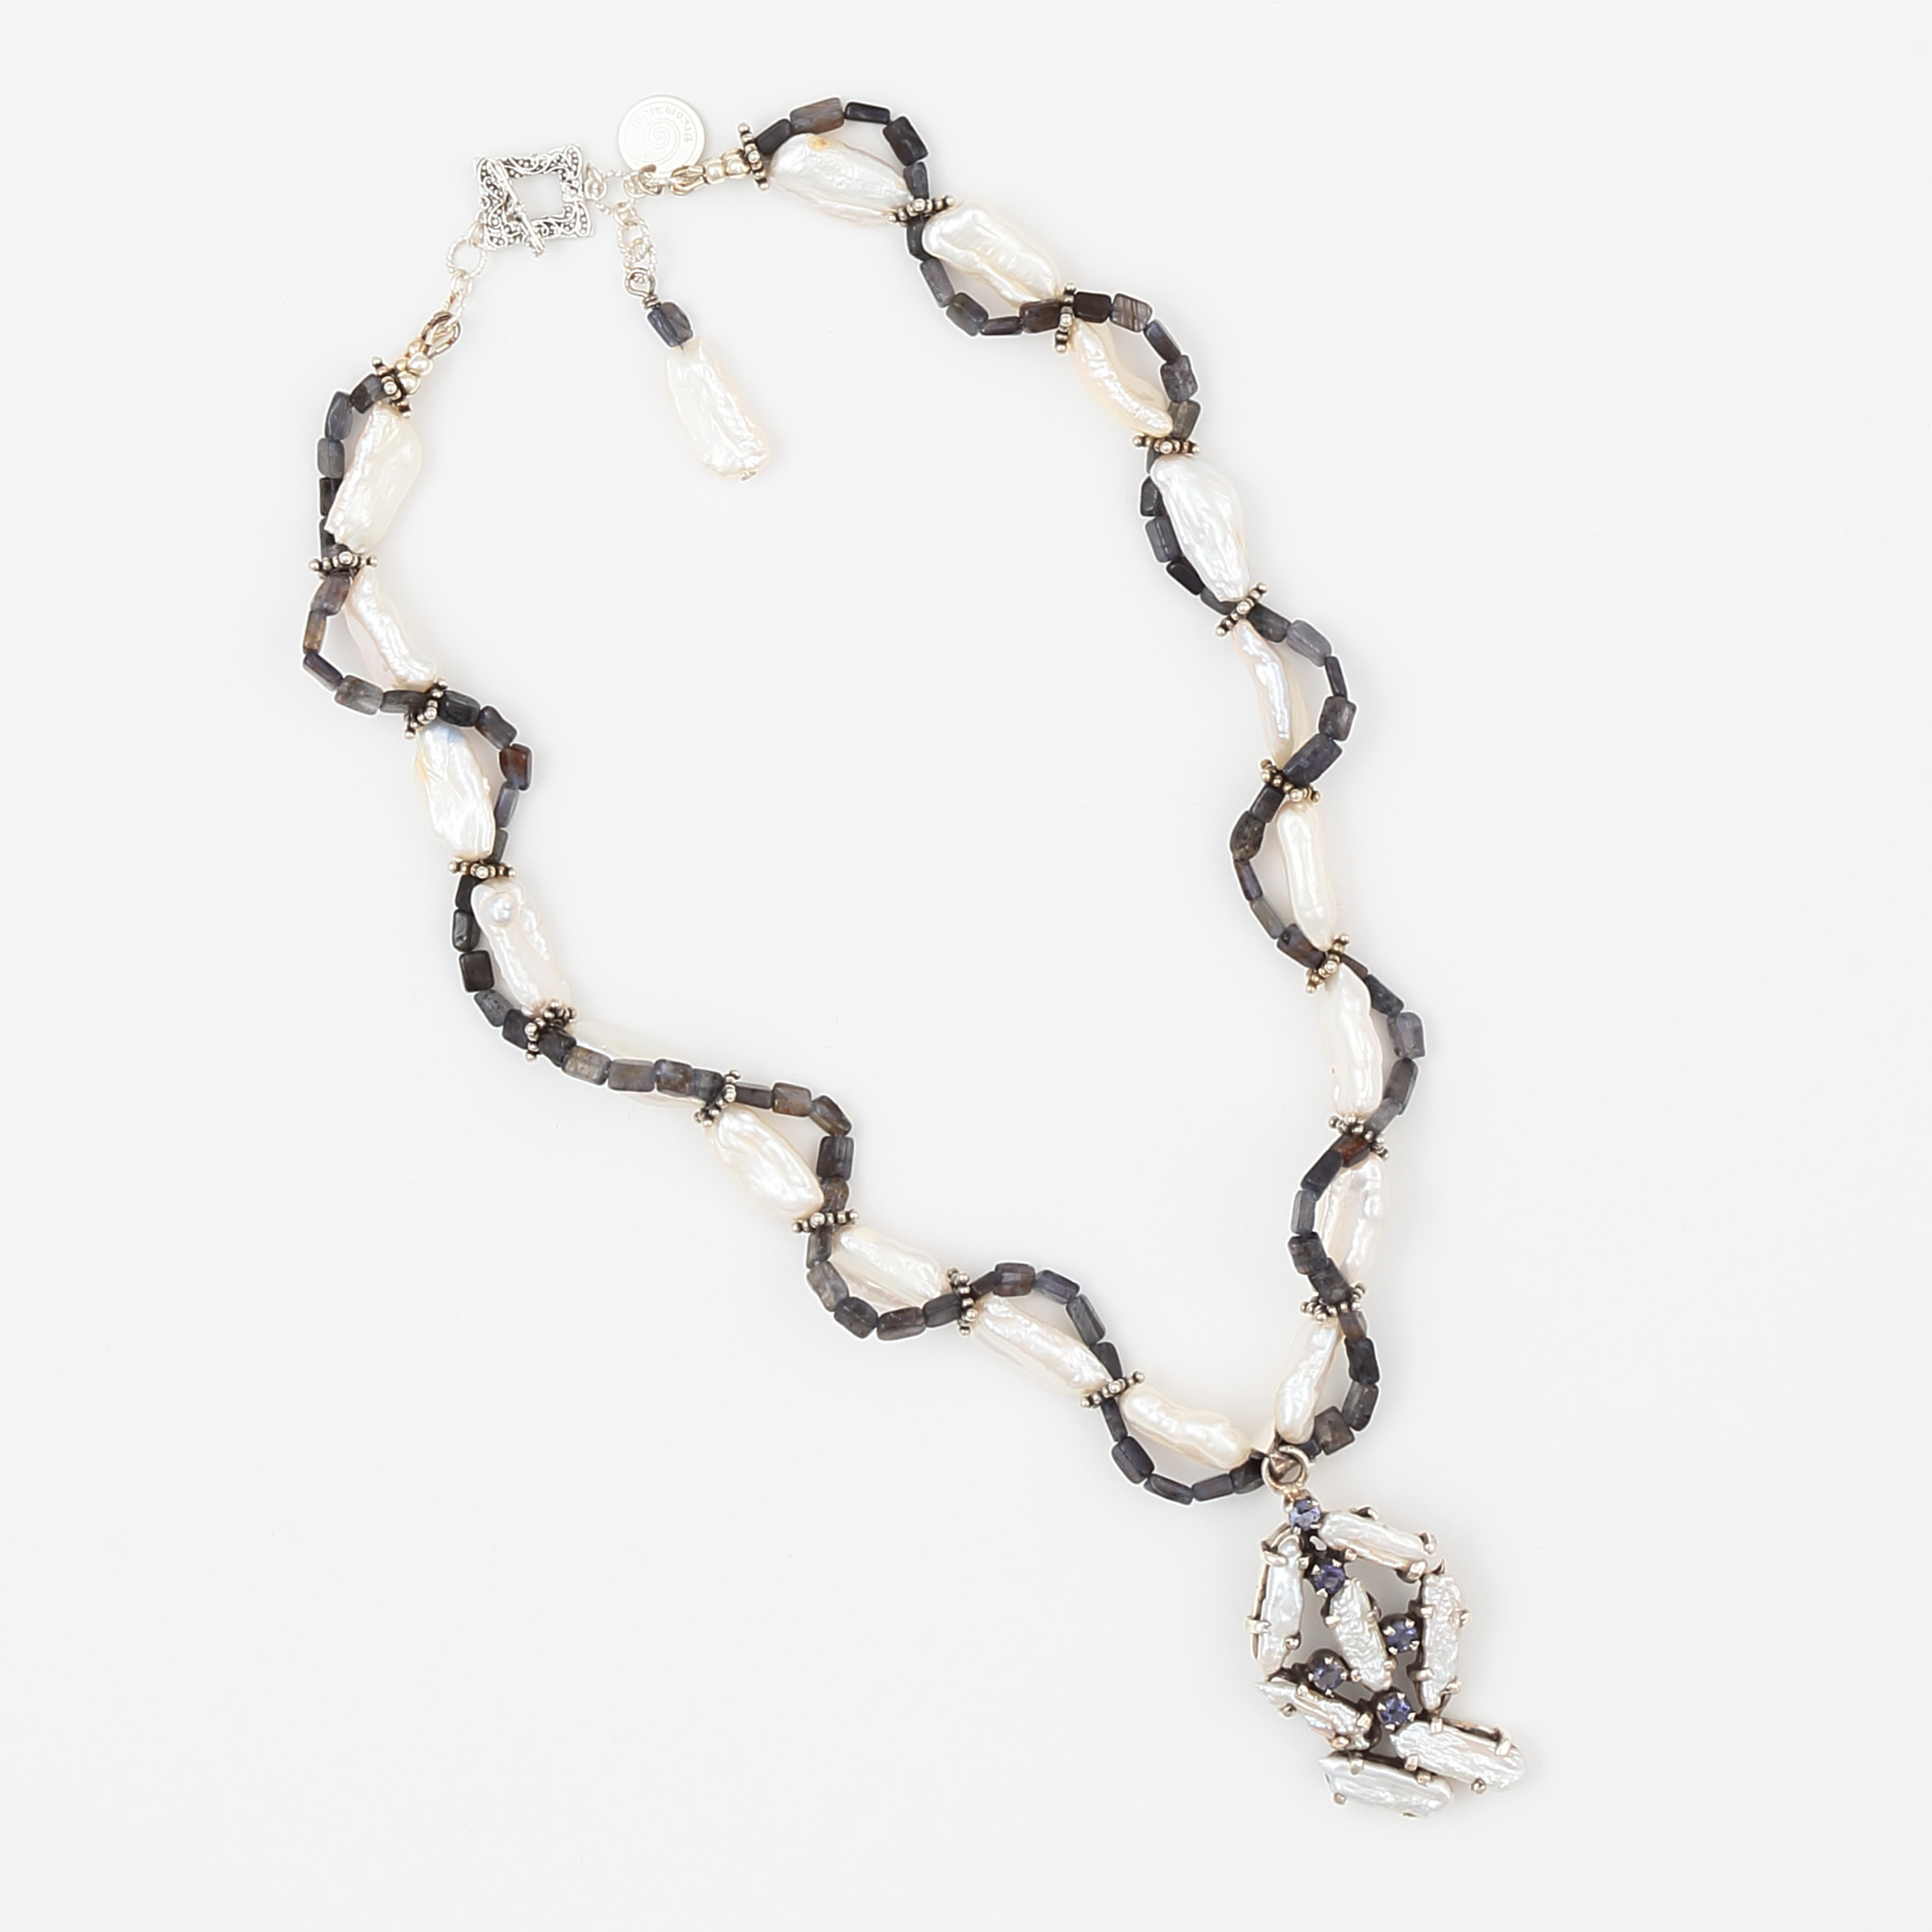 The Road Less Traveled Necklace